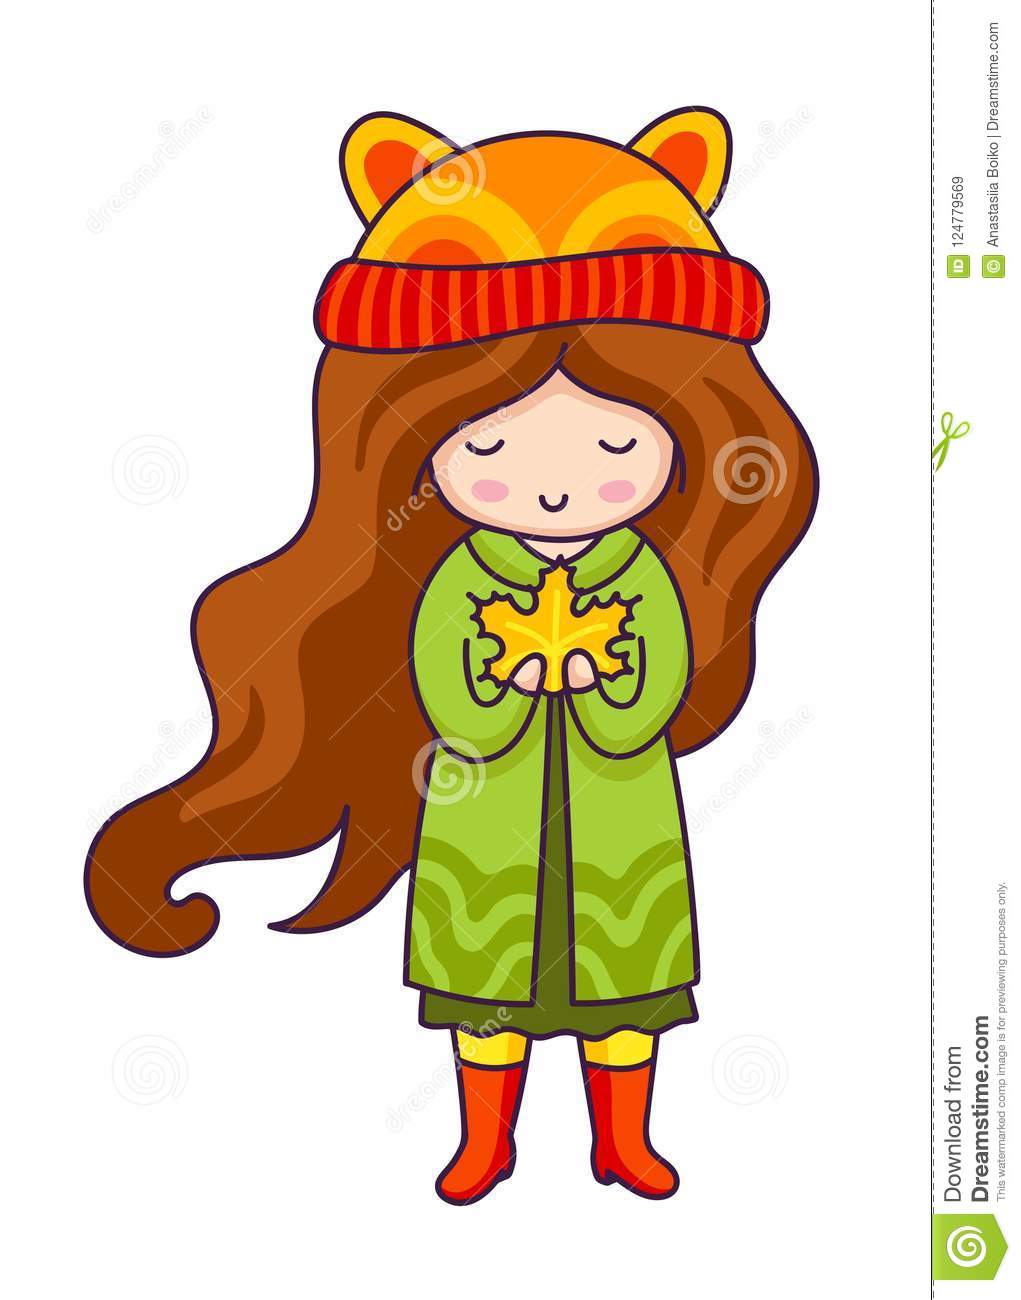 Autumn girl. Hand drawn little girl with maple leaf in her hands. Kawaii cartoon character.